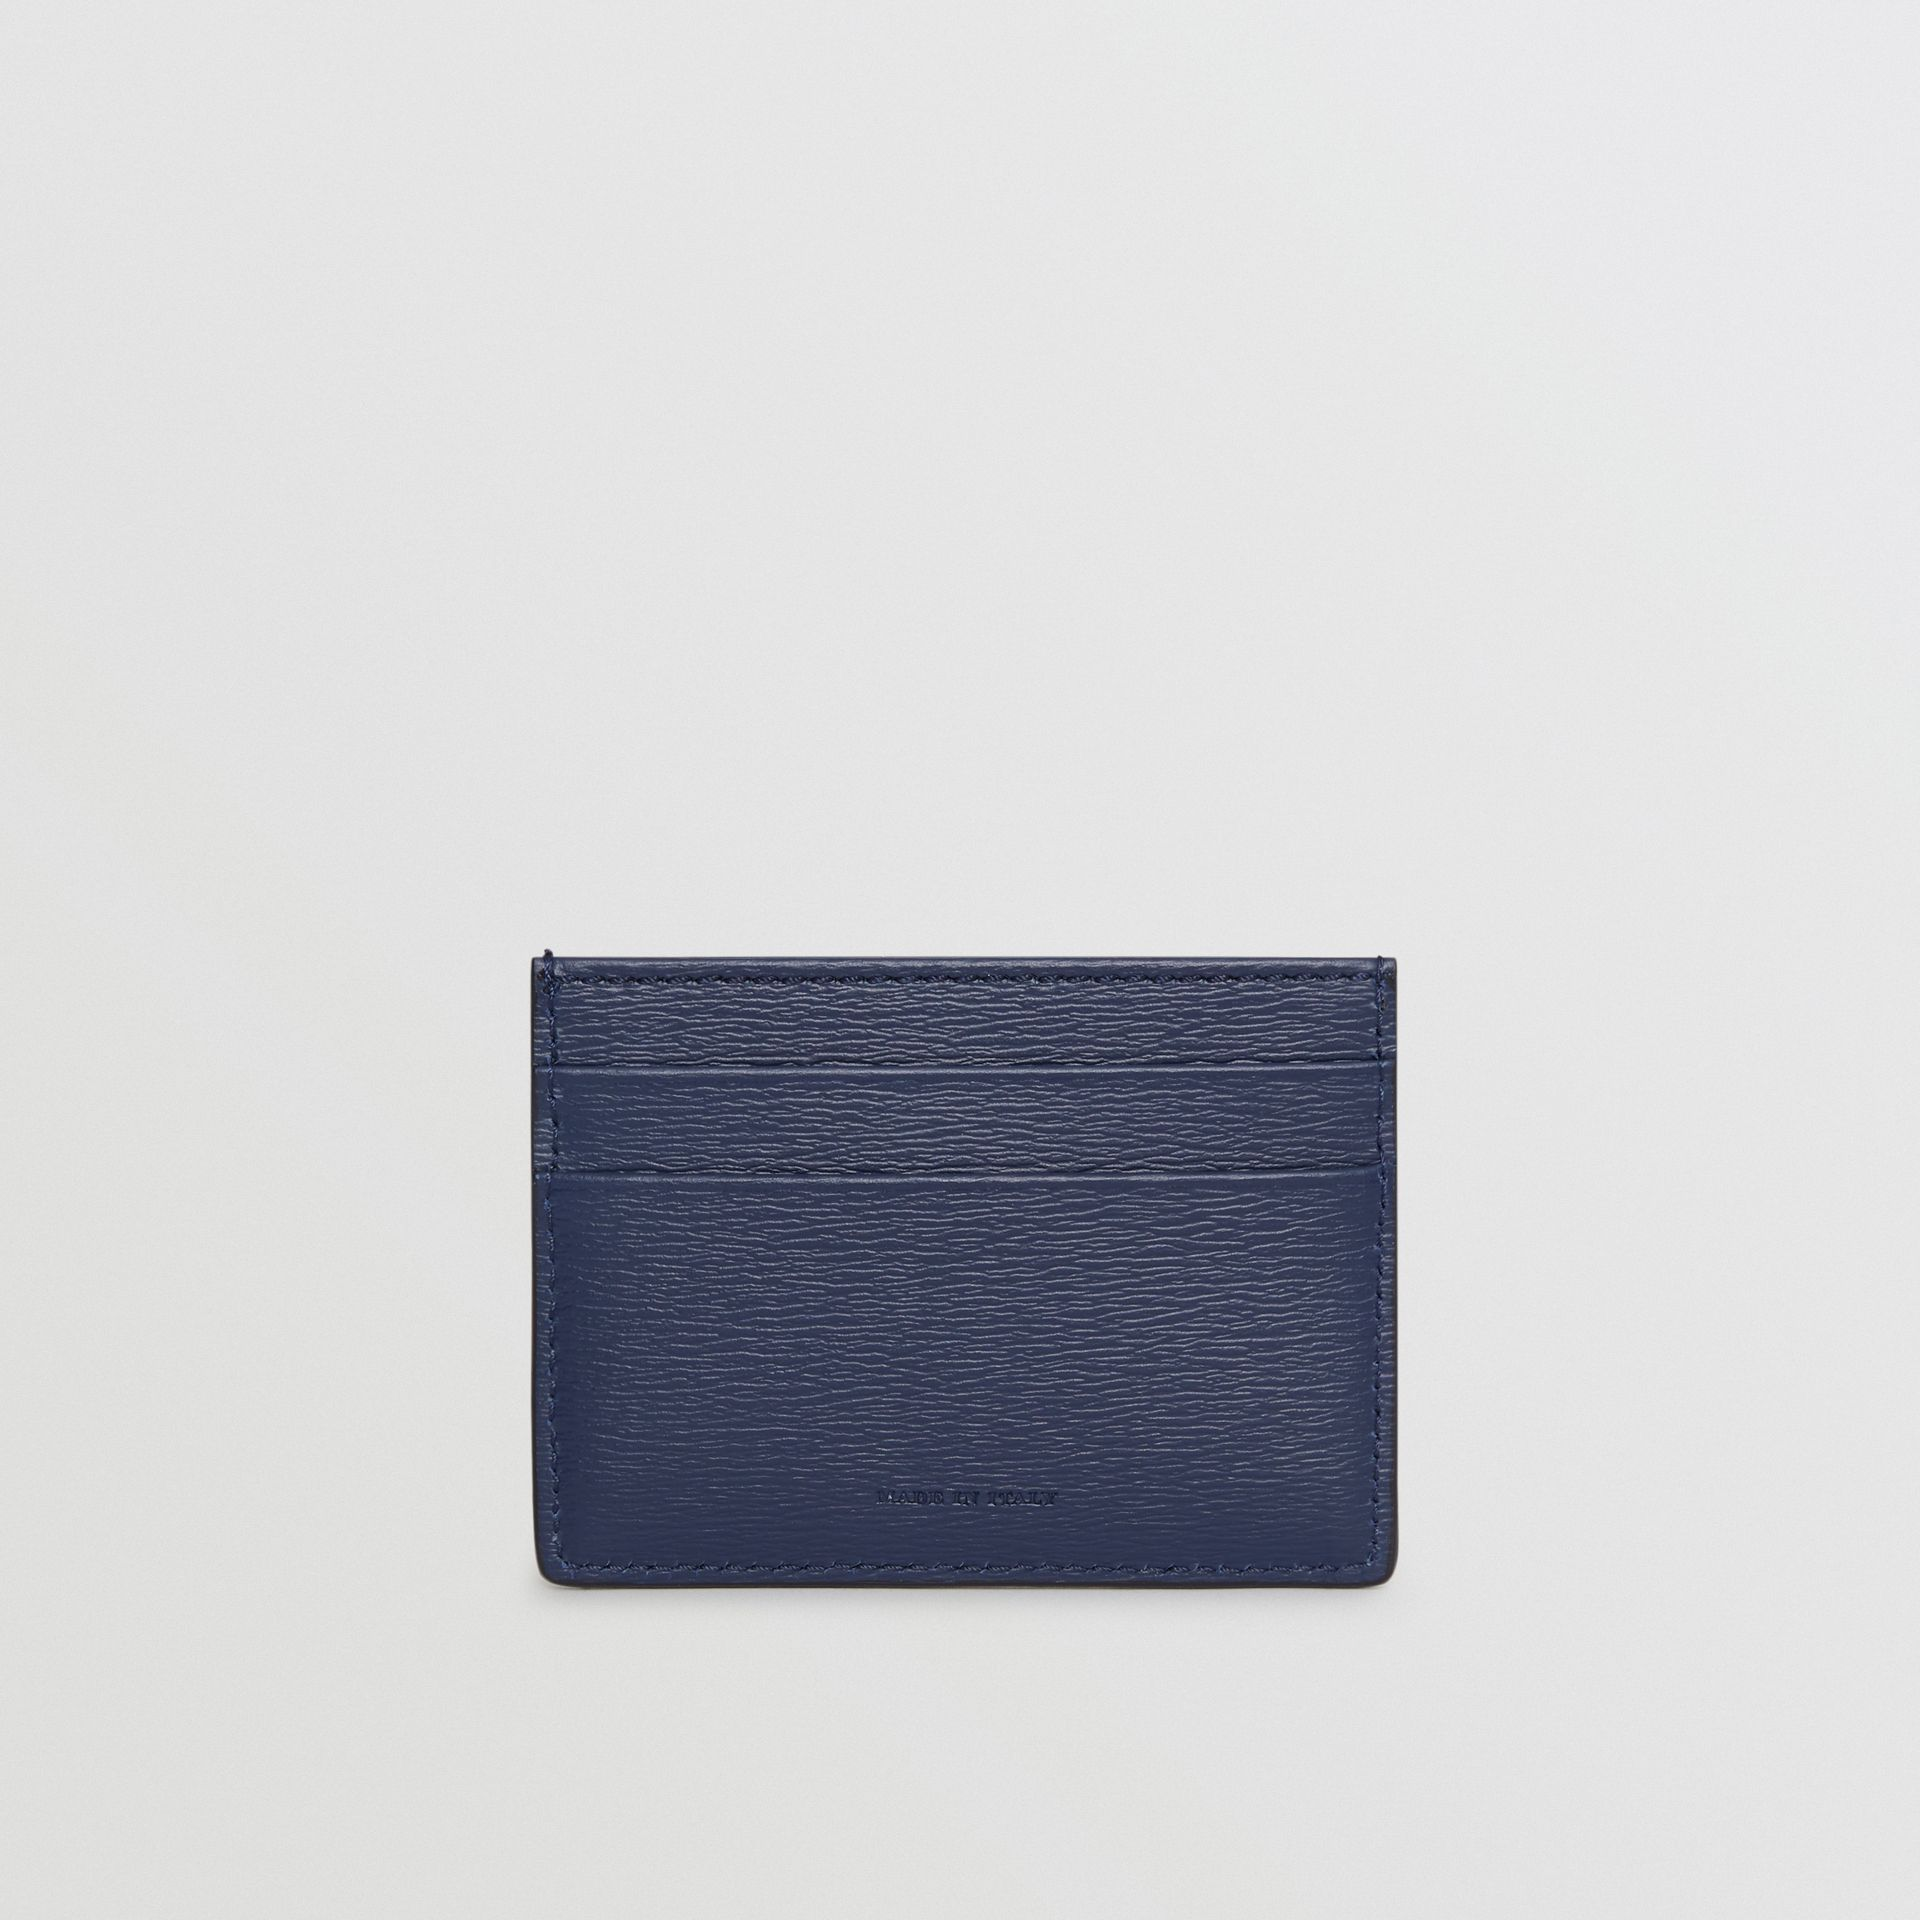 London Leather Card Case in Navy - Men | Burberry - gallery image 4